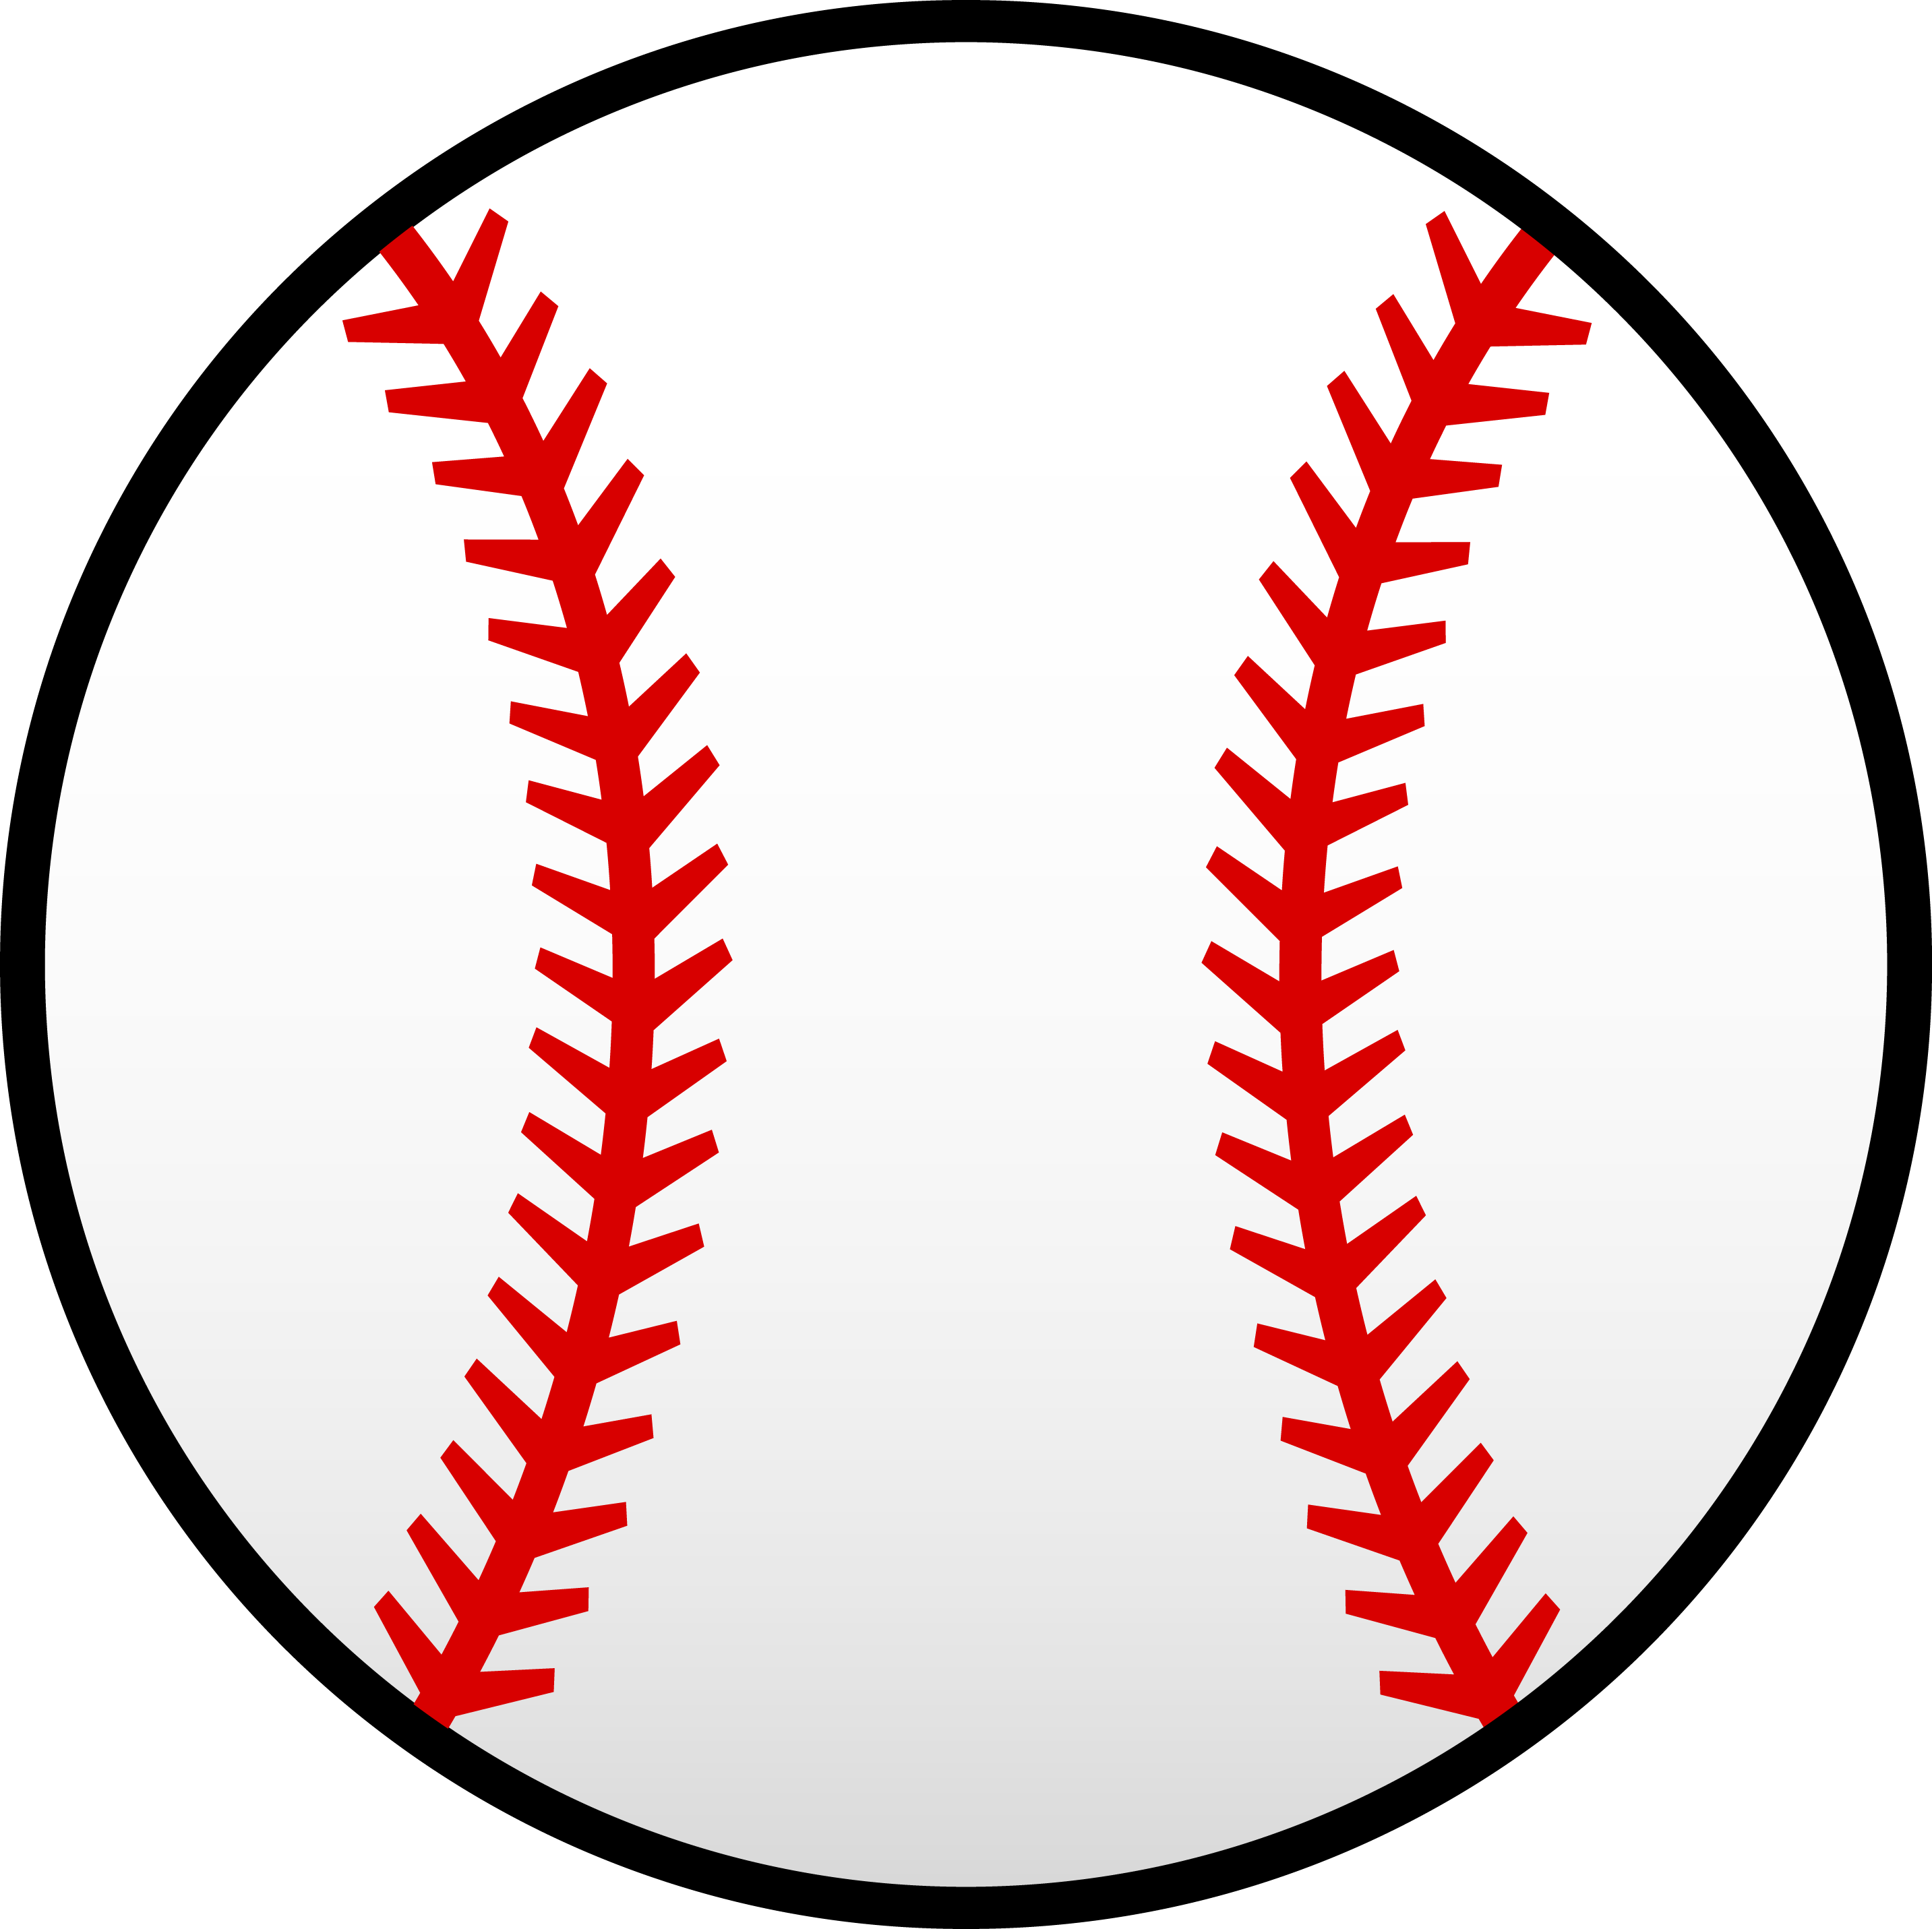 Baseball clipart stitches picture royalty free stock Stitches Cliparts | Free download best Stitches Cliparts on ... picture royalty free stock